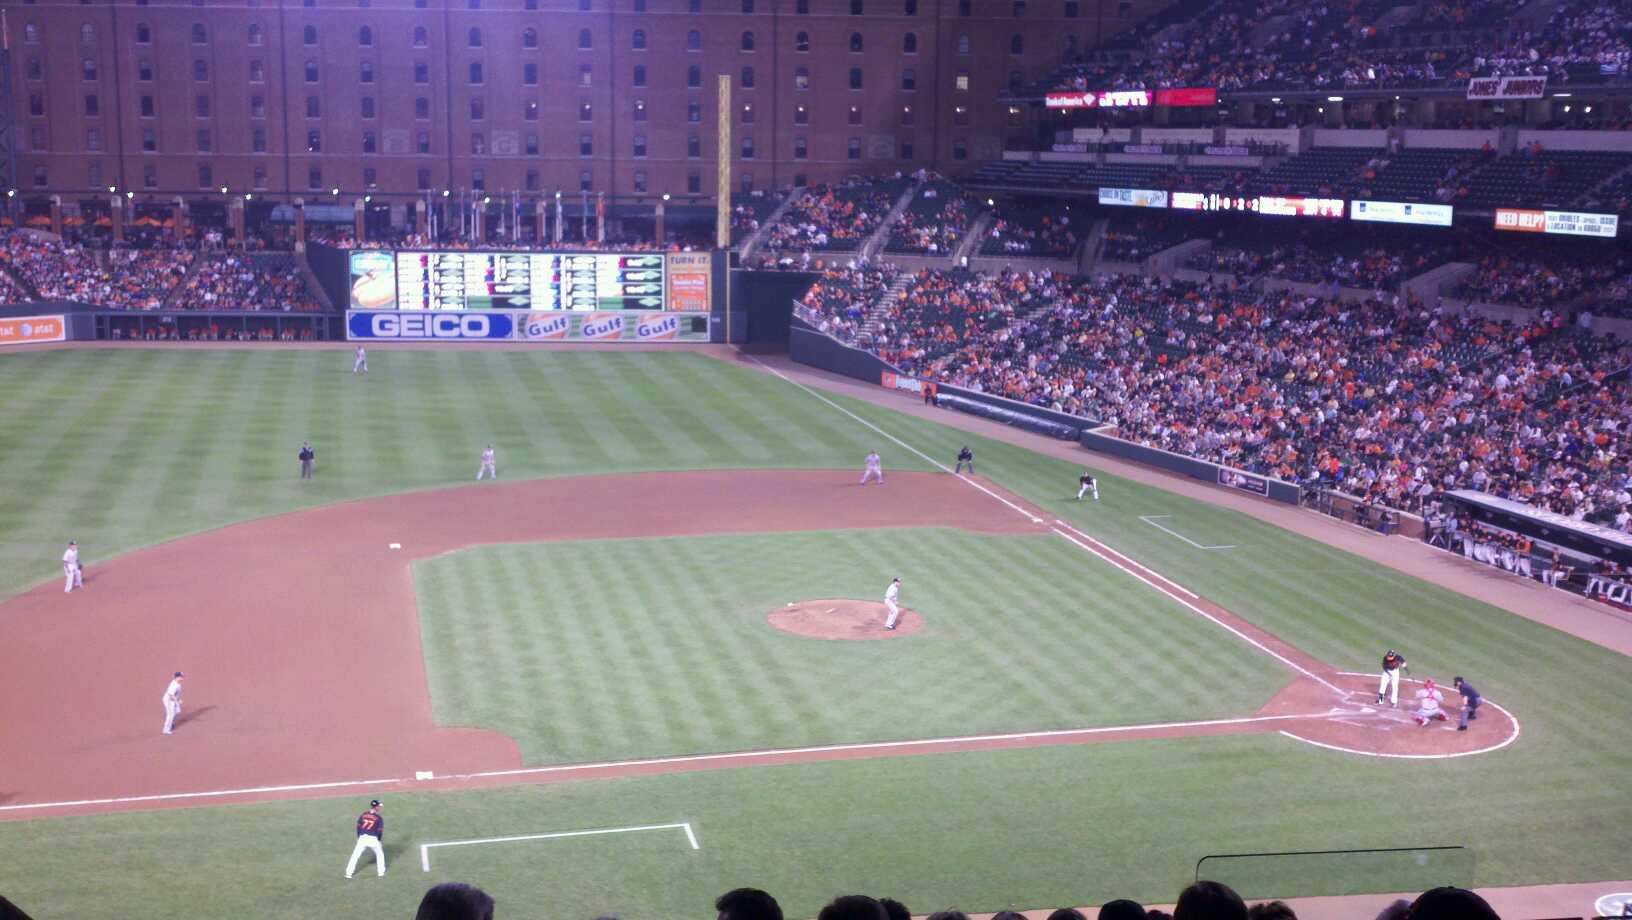 Oriole Park at Camden Yards Section 250 Row 9 Seat 5